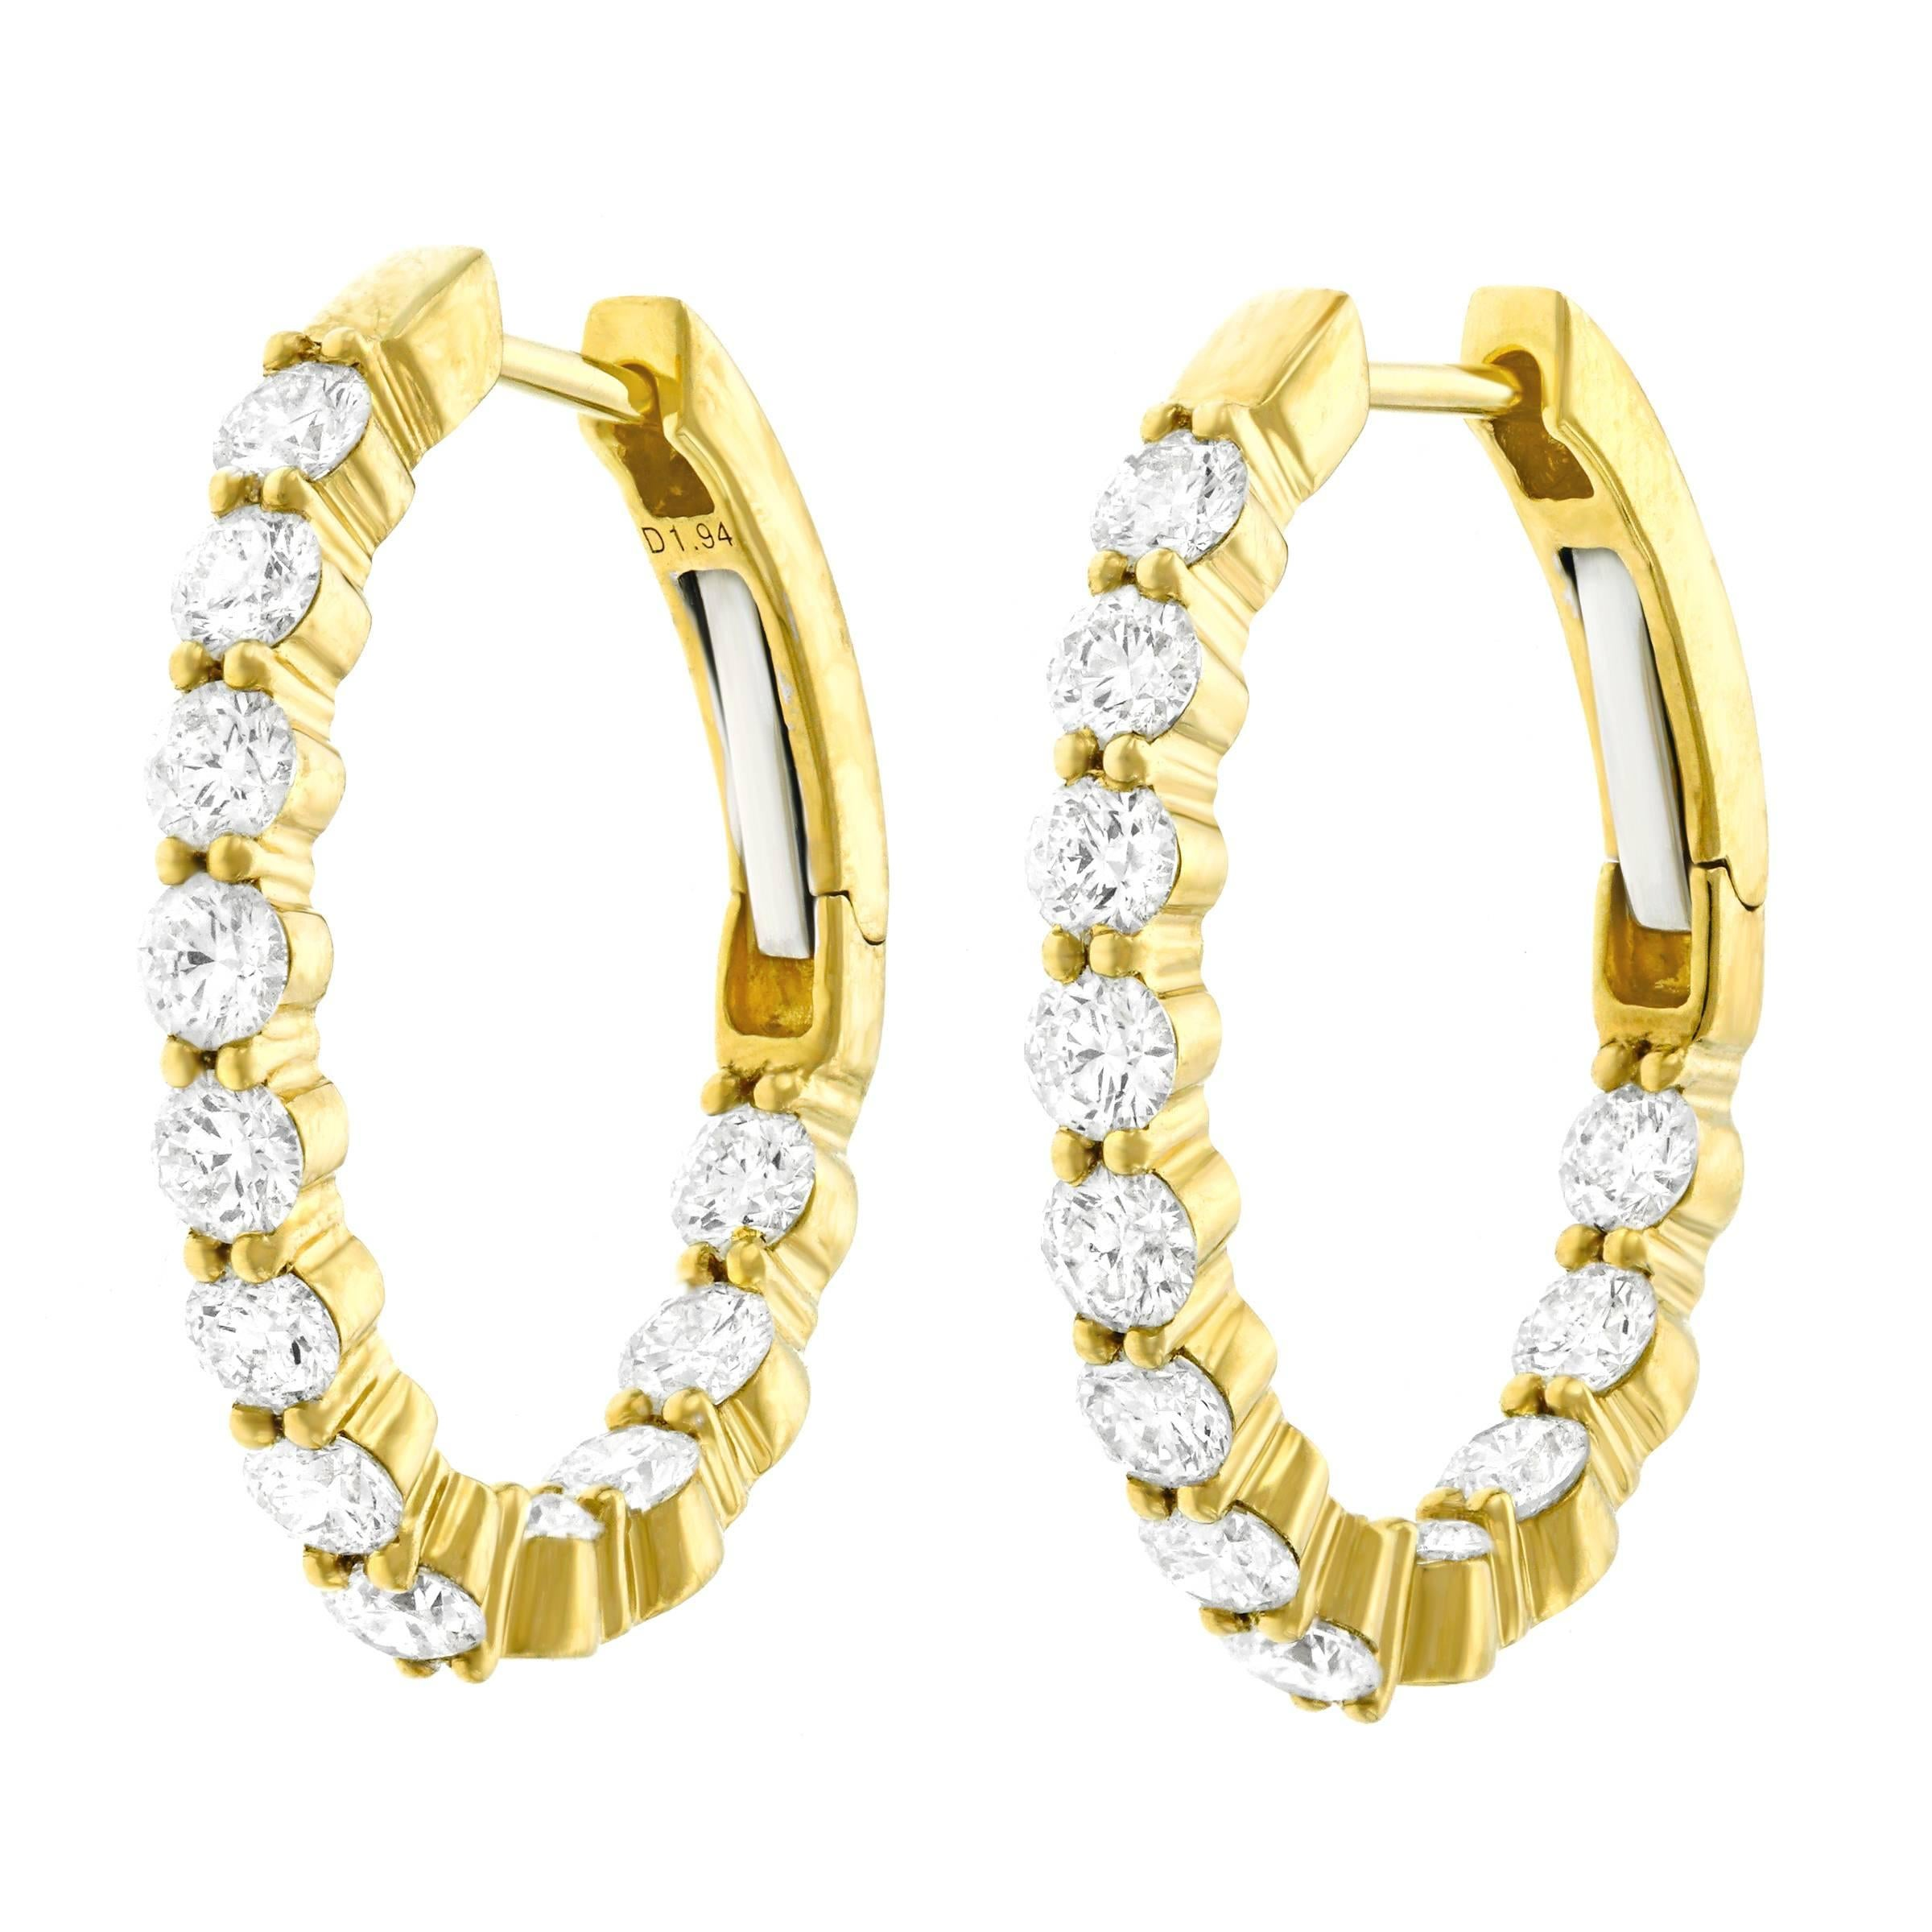 yossi jewelry harari hoop bargen product gold diamond earrings jane von s